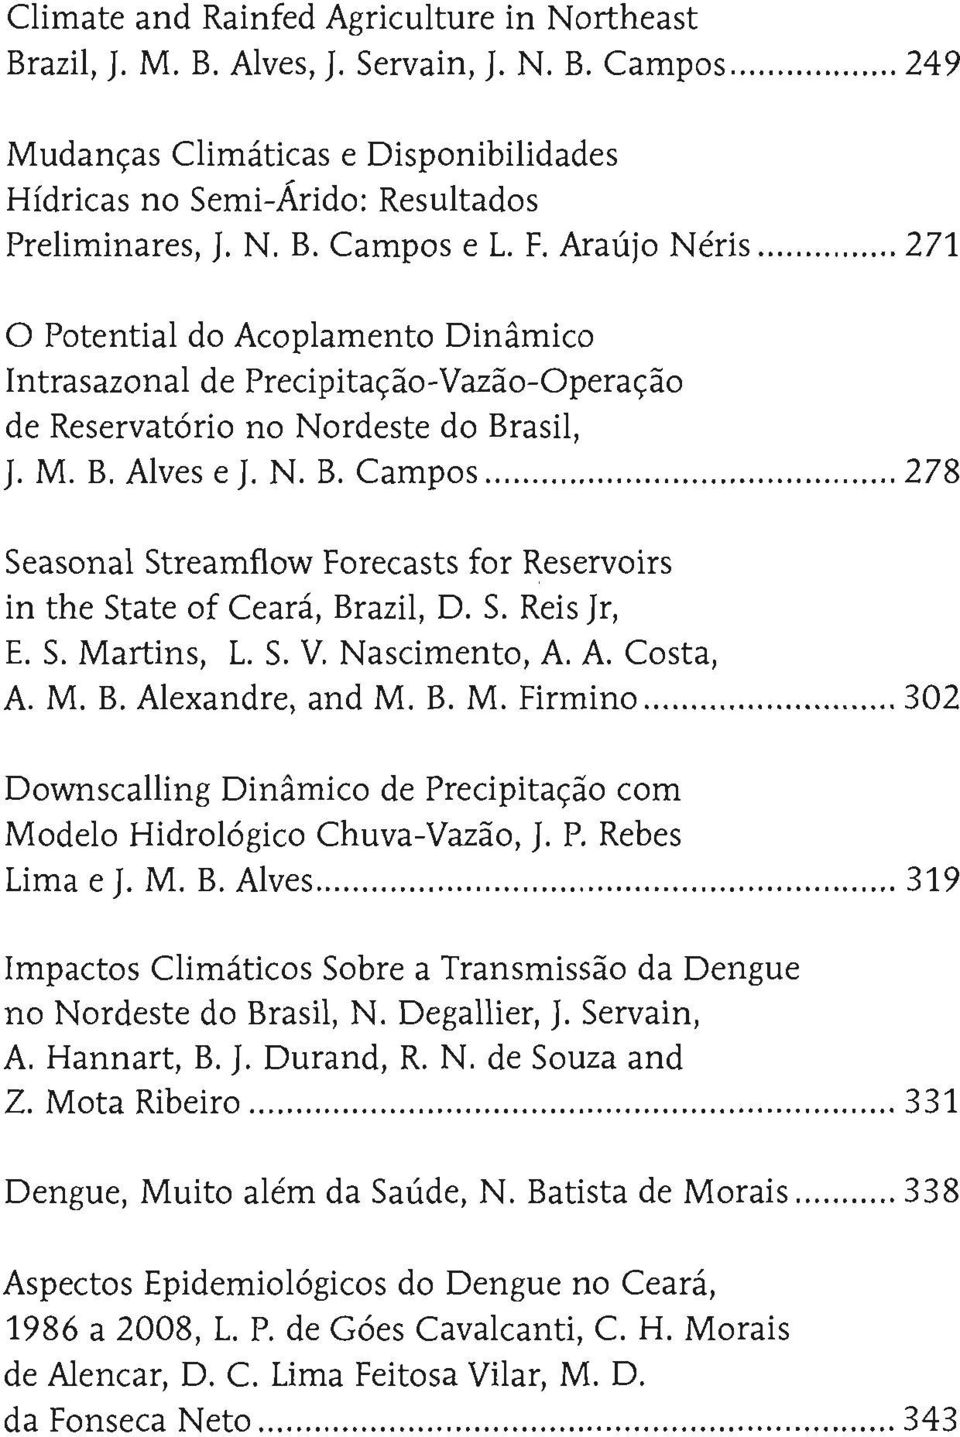 asil, J. M. B. Alves e J. N. B. Campos 278 Seasonal Streamflow Forecasts for Reservoirs in the State of Ceará, Brazil, D. S. Reis jr, E. S. Martins, L. S. V. Nascimento, A. A. Costa, A. M. B. Alexandre, and M.